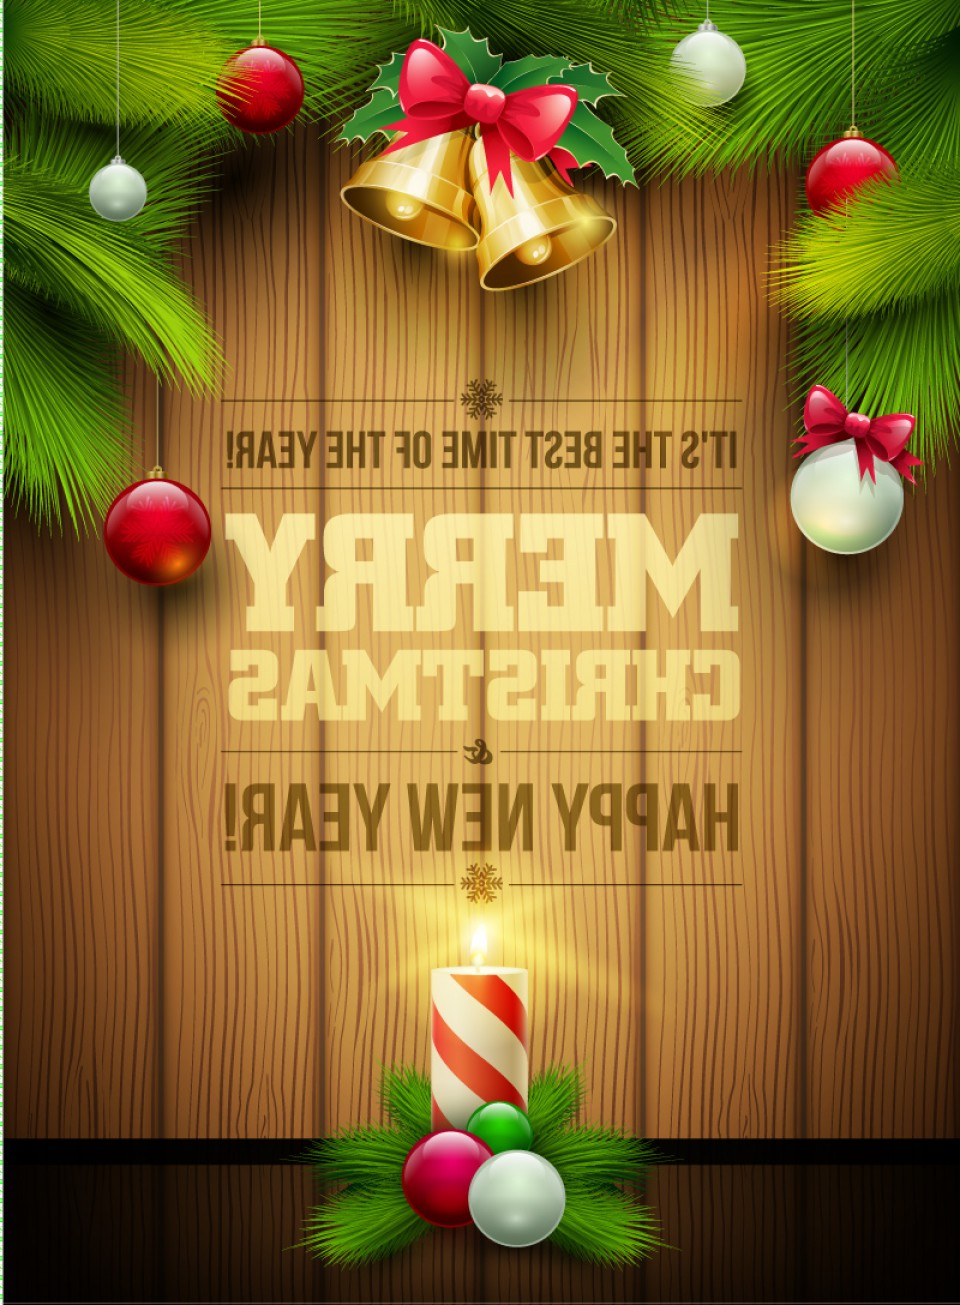 Merry Christmas Vector Graphic: Merry Christmas Bell Pine Wooden Vector